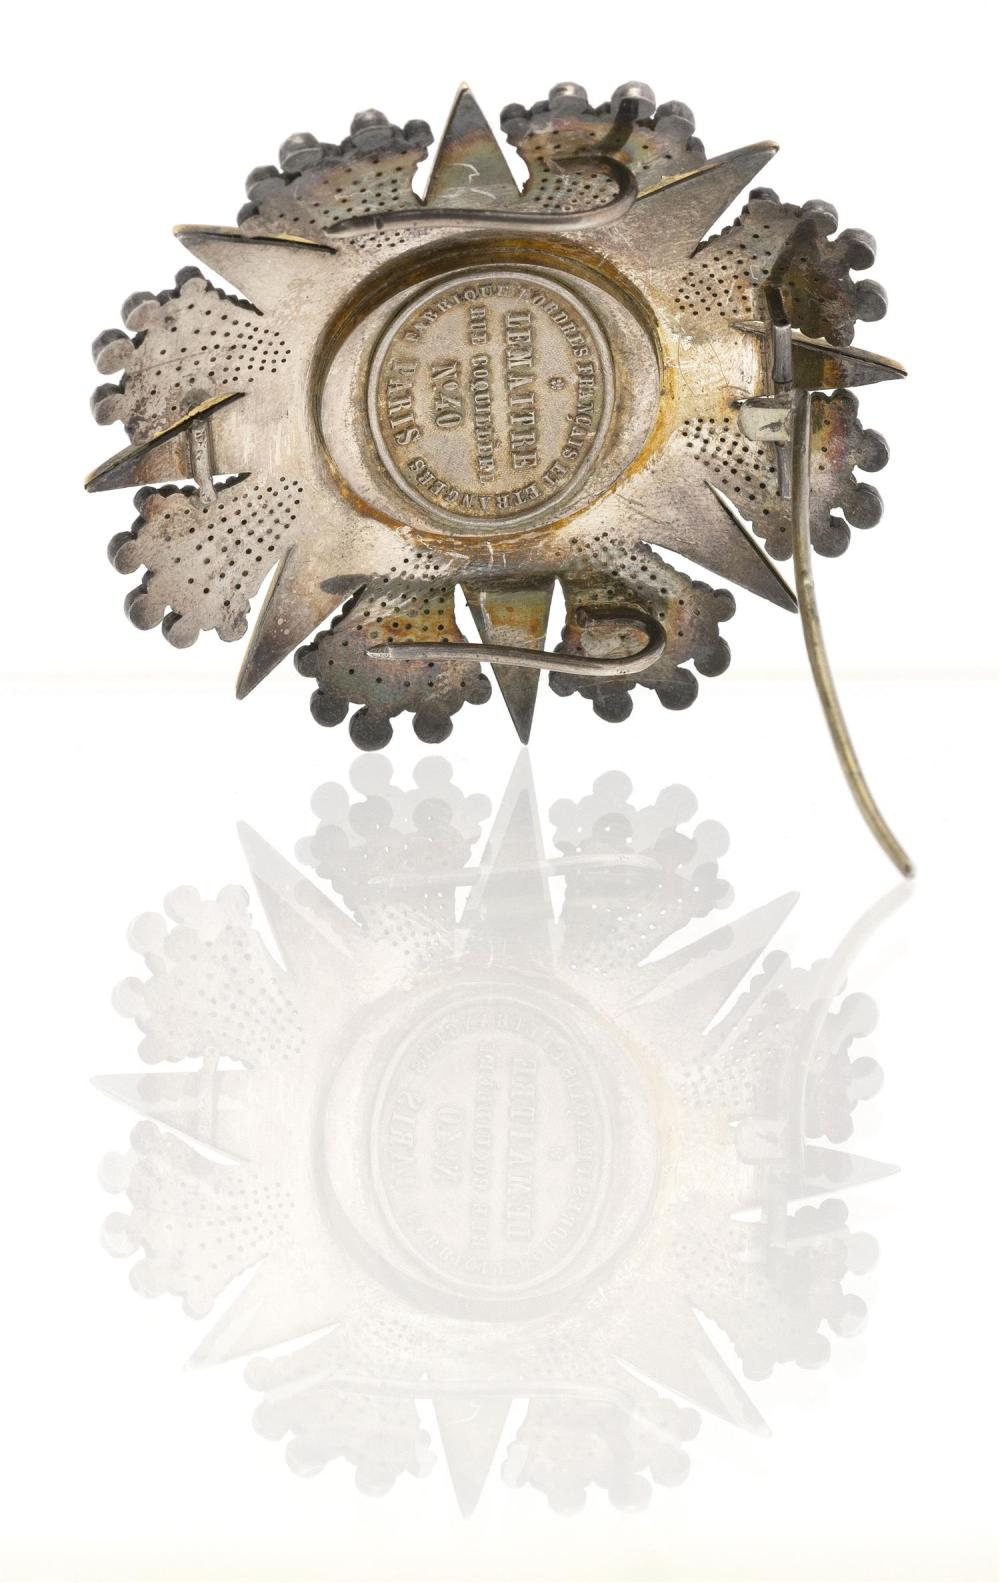 PAPAL ORDER OF PIUS IX SILVER BREAST STAR Made by Lemaitre, Paris. Silver and enamel. Diameter 2.5